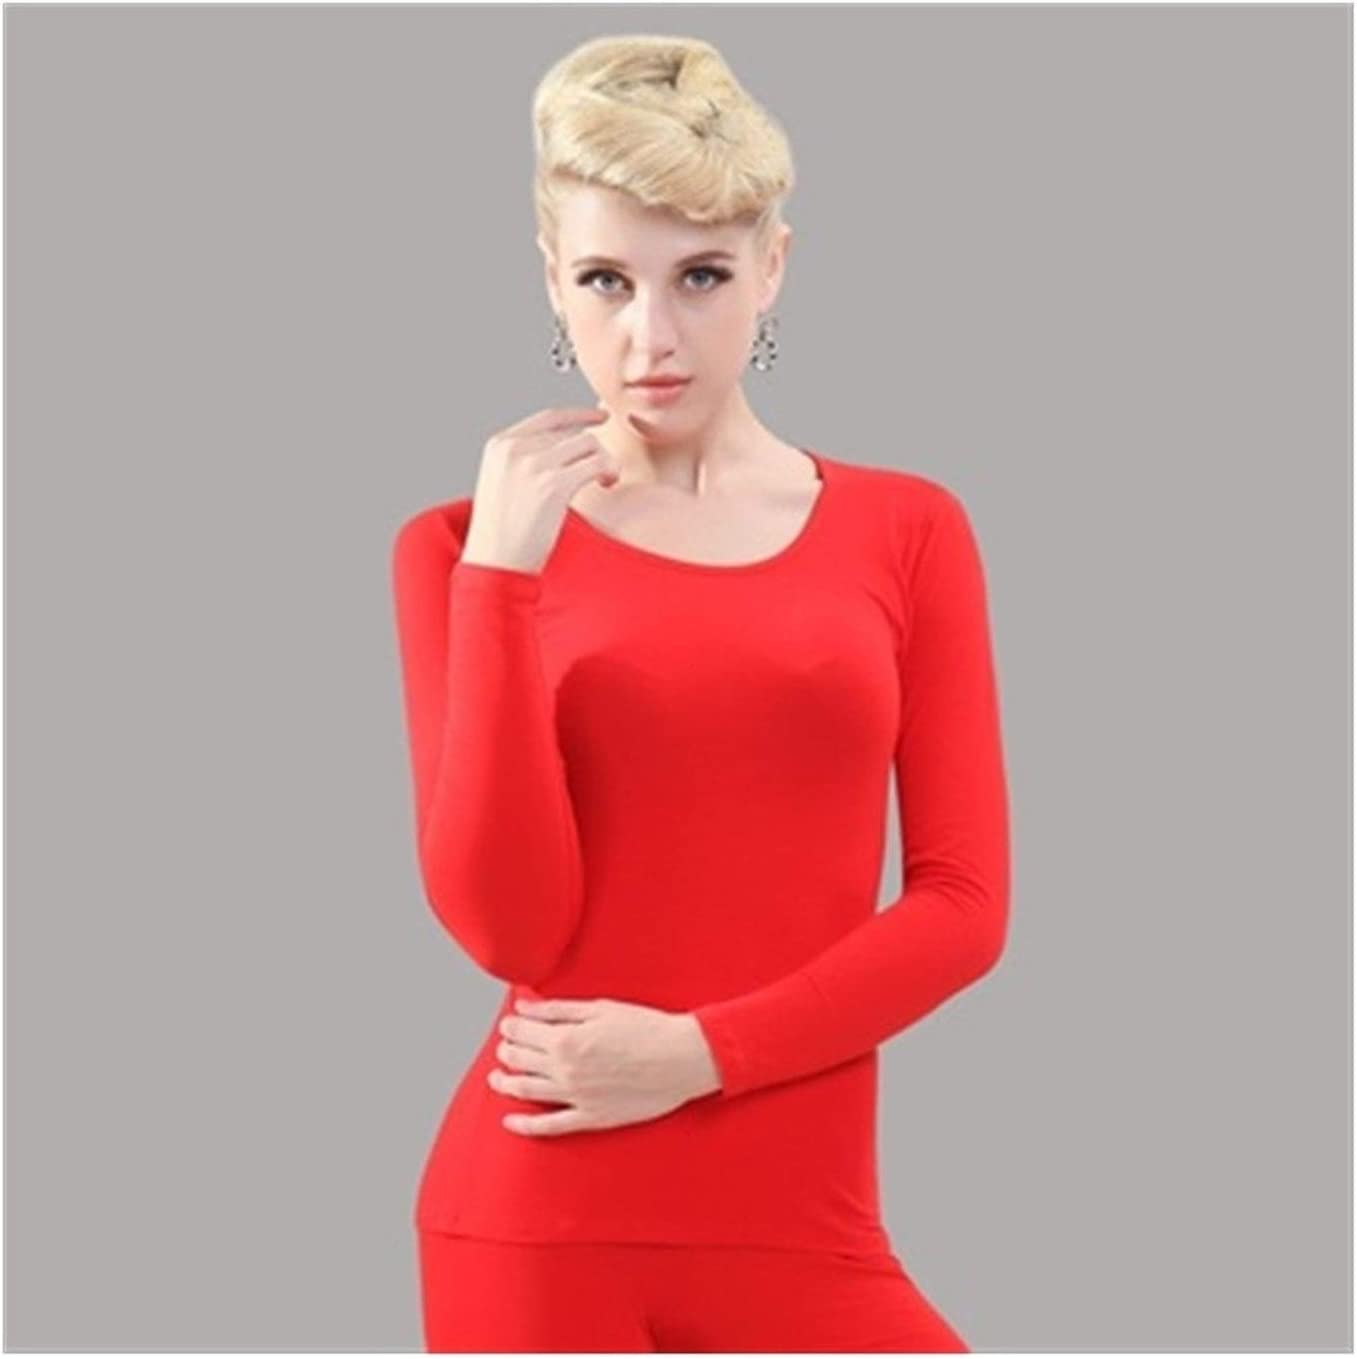 QWERBAM Women Intimates Low O Neck Cotton Thin Soft Heated Inner Clothing Winter Keep Warm Thermal Underwear (Color : Red, Size : One Size)